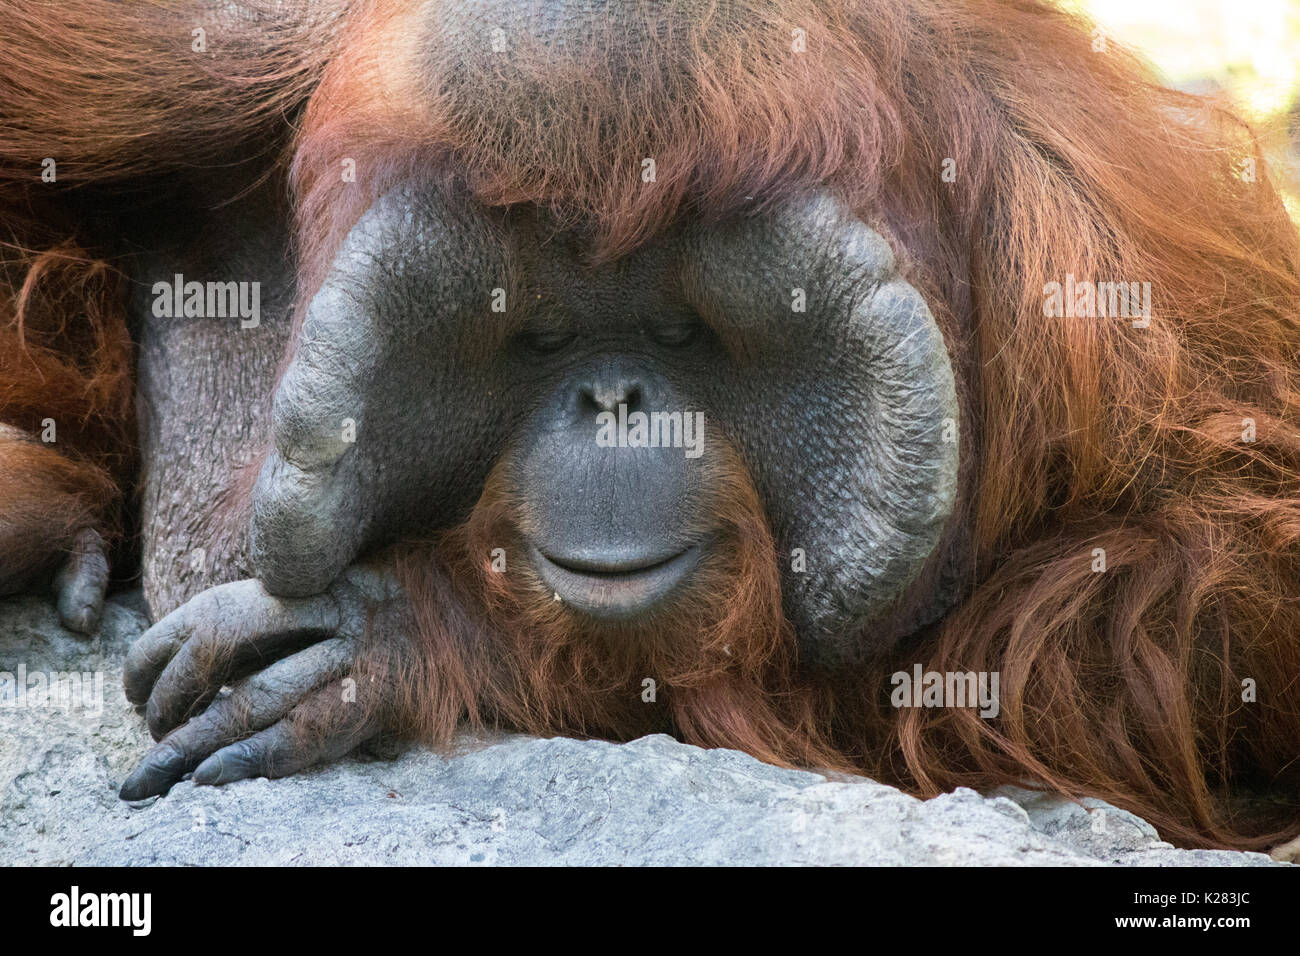 Orangutan waiting for people to take pictures in the zoo in Thailand, sometimes it looked sad - Stock Image